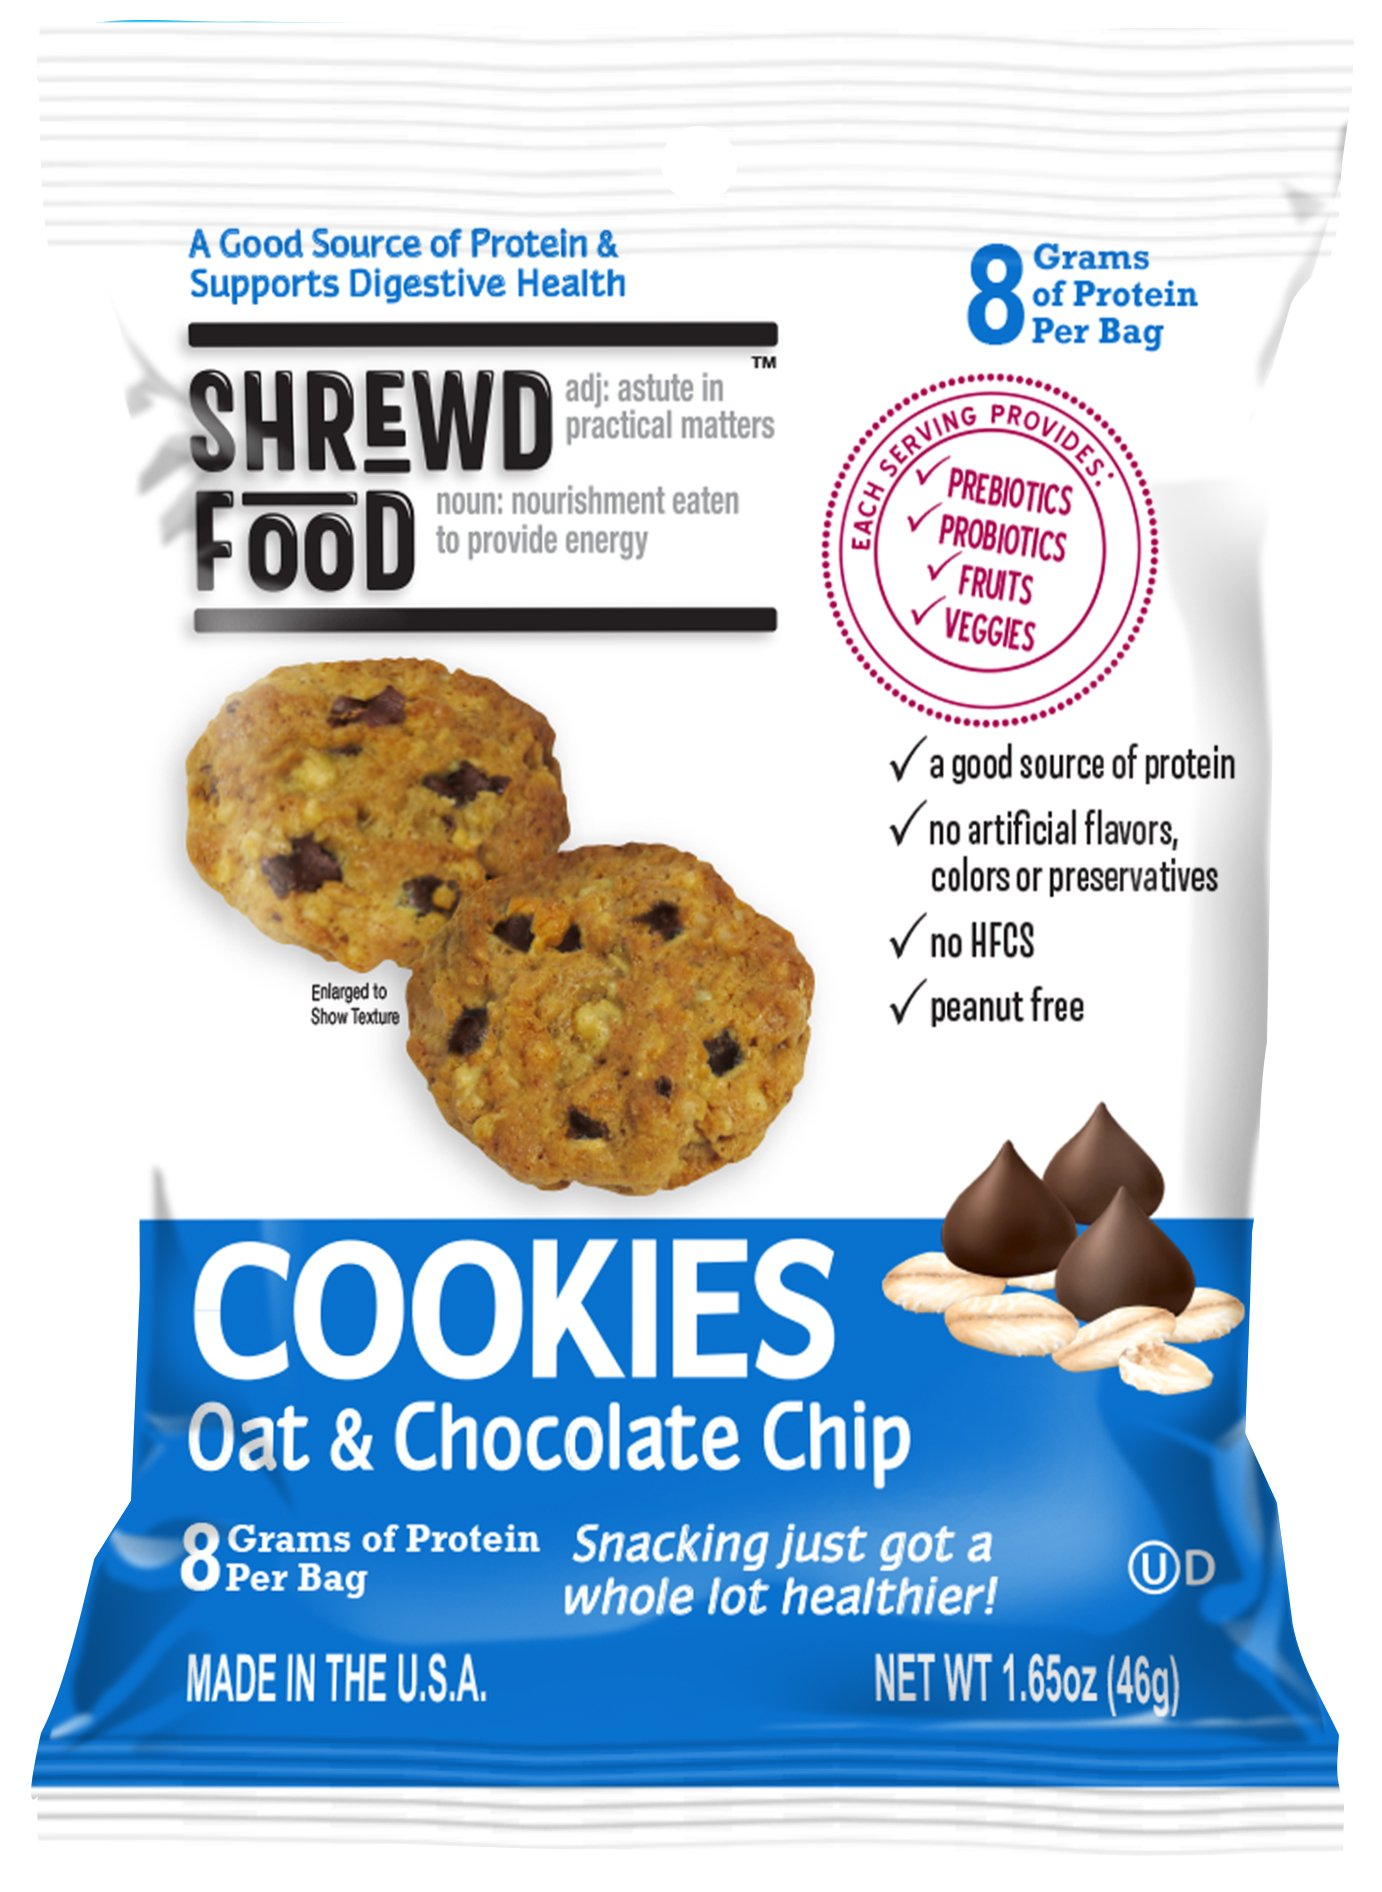 Shrewd Food Oat and Chocolate Chip Cookies | Great Tasting High Protein Cookie | 1 Billion CFU Pre and Probiotics | 1 Serving of Fruits and Veggies | 9 Pack